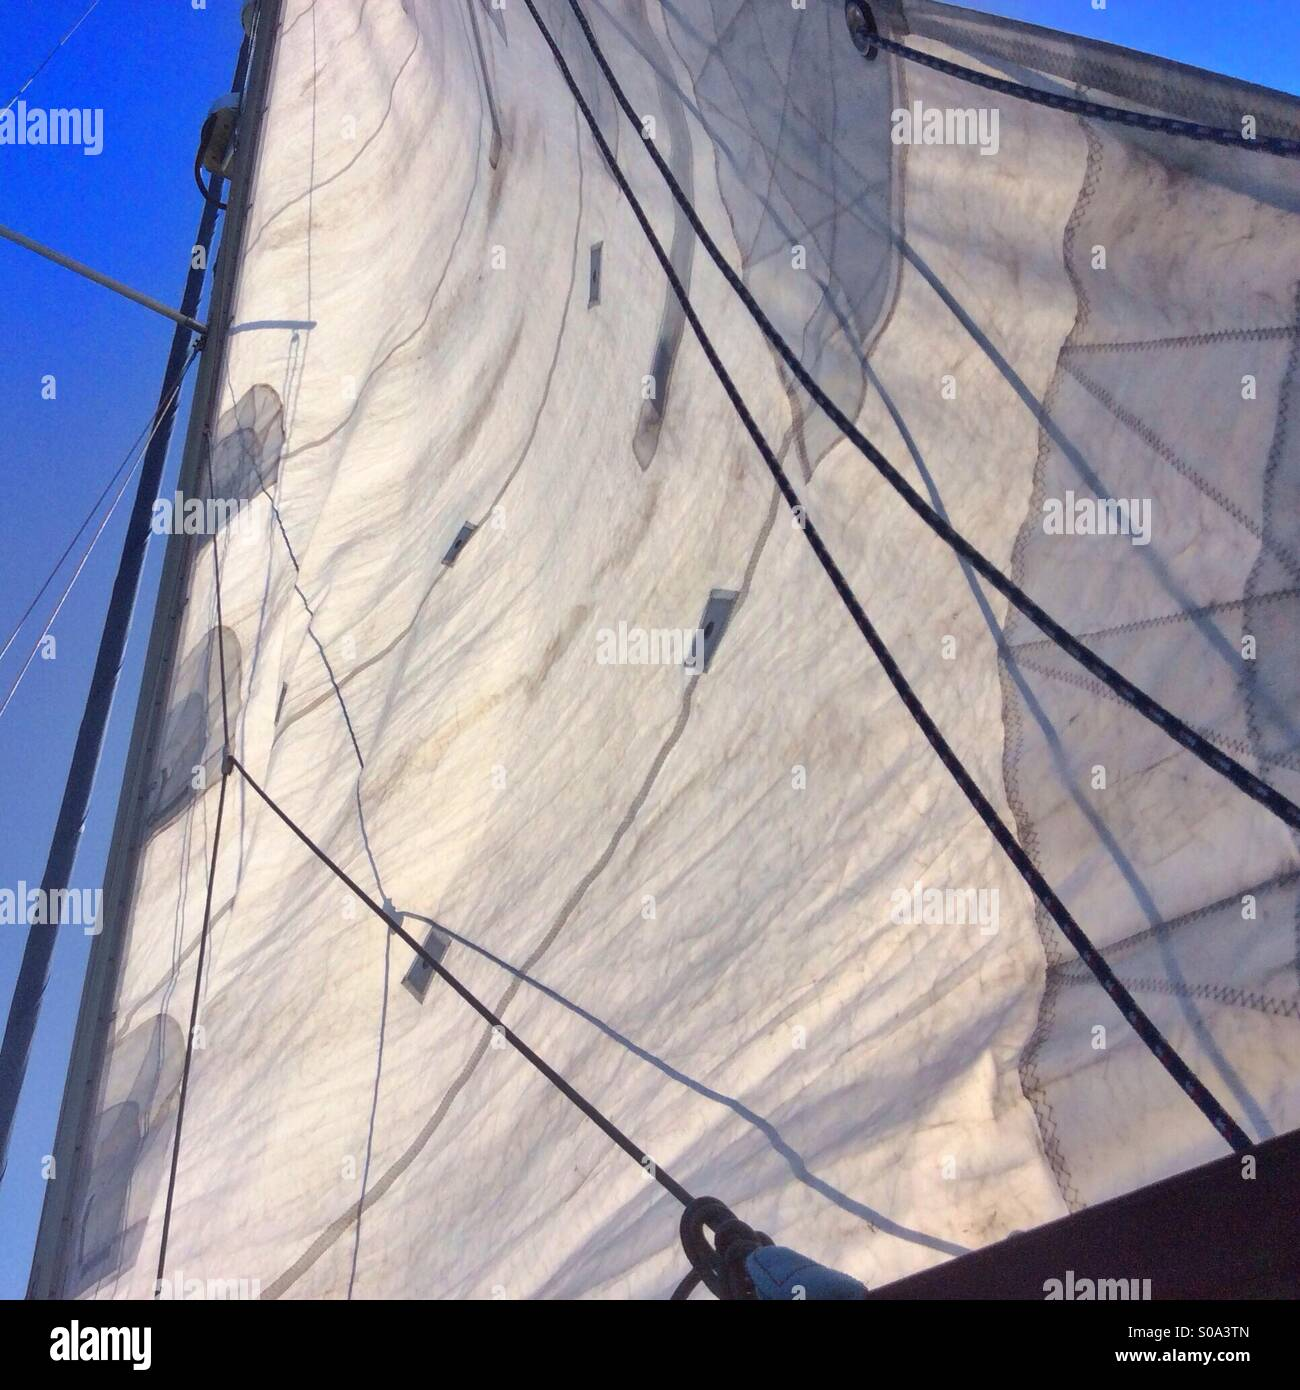 Yacht sail cloth loosely blows in the wind against deep blue sky. - Stock Image